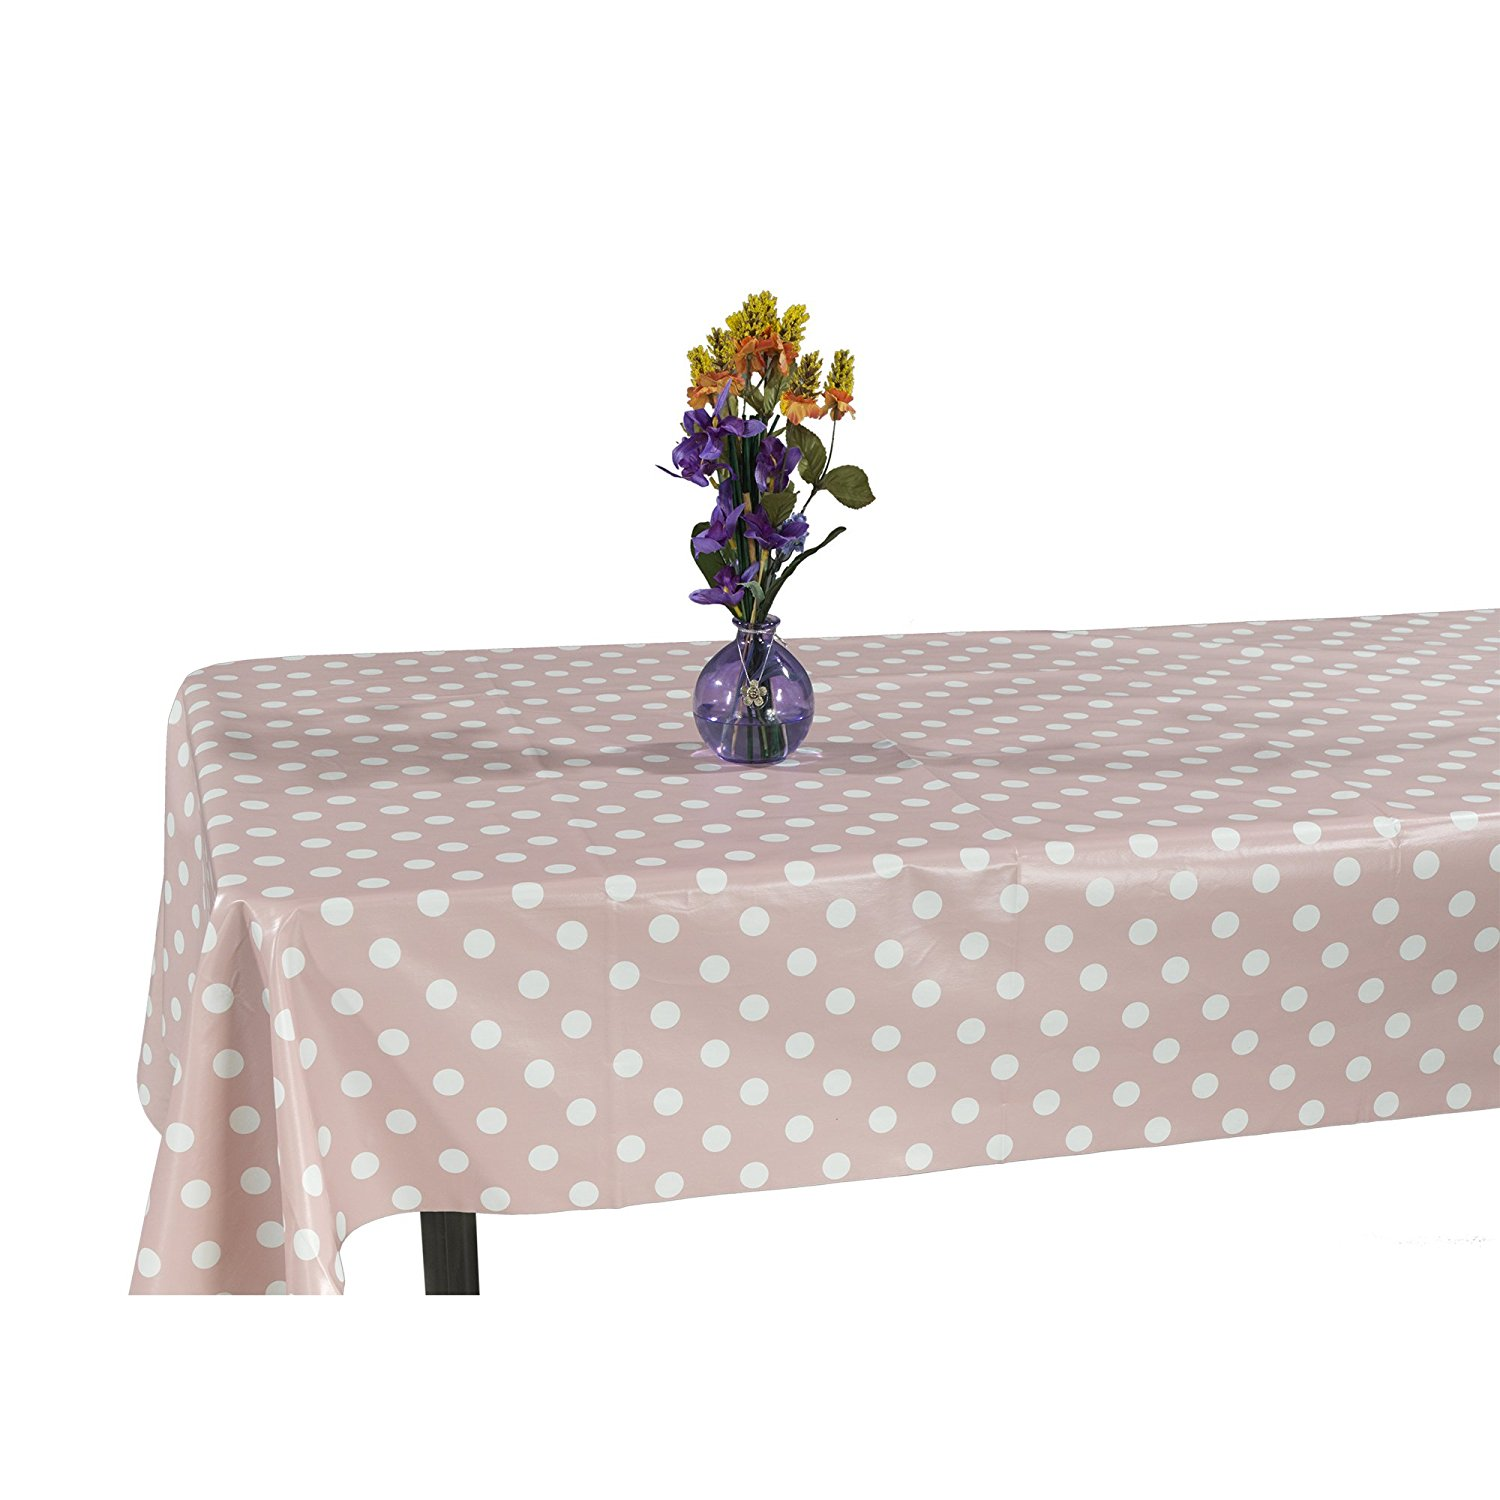 "Ottomanson Vinyl Polka Dot Design 55"" X 102"" Indoor & Outdoor Non-Woven Backing Tablecloth"